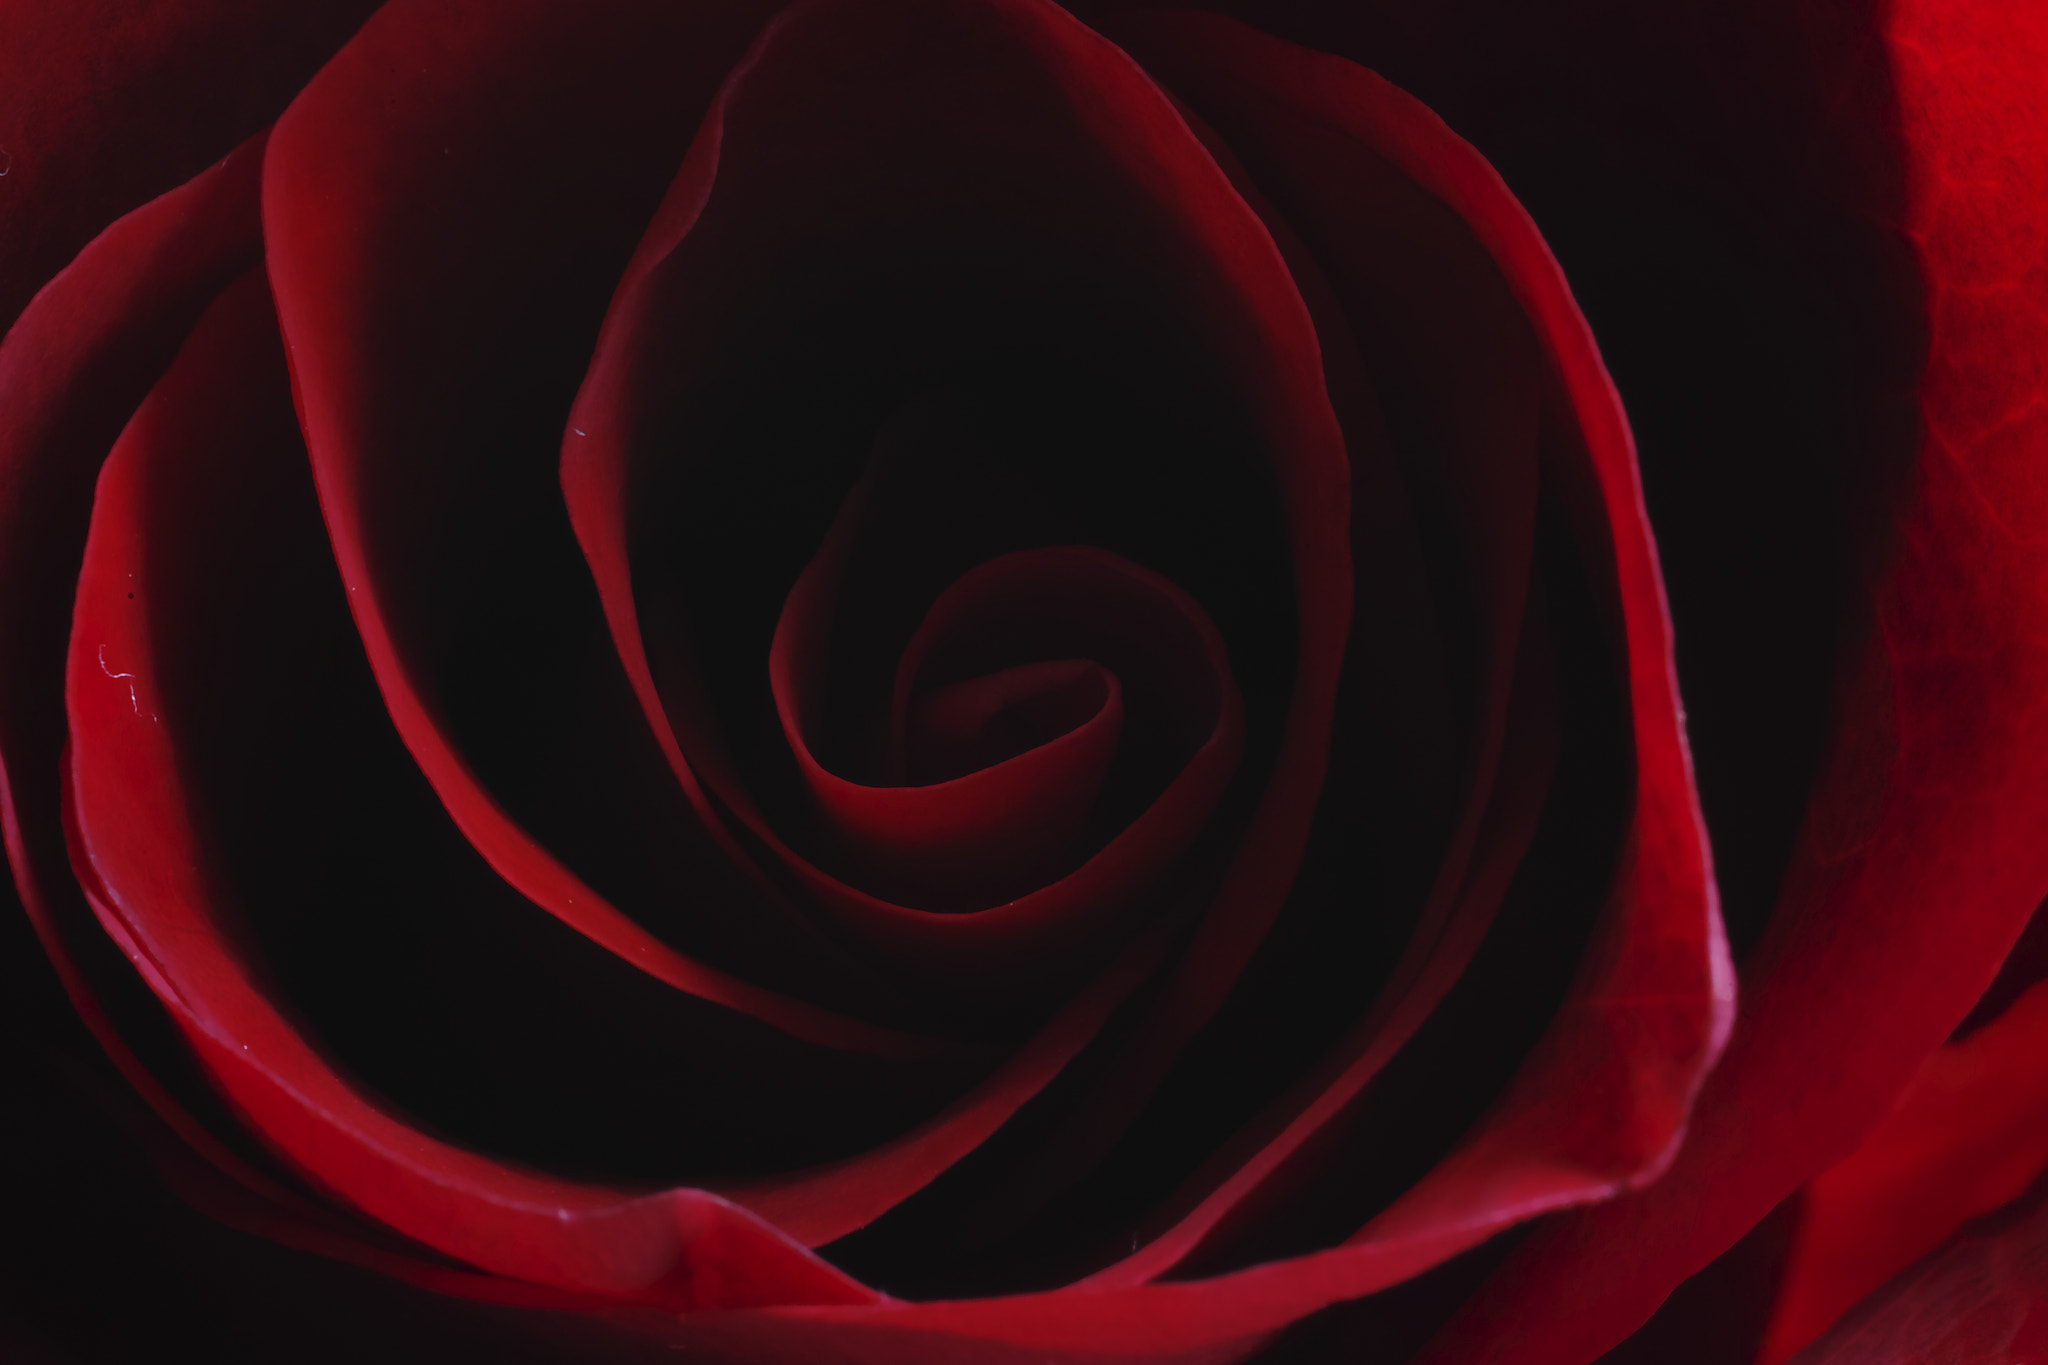 Photograph Red Rose by sevenhalf  on 500px